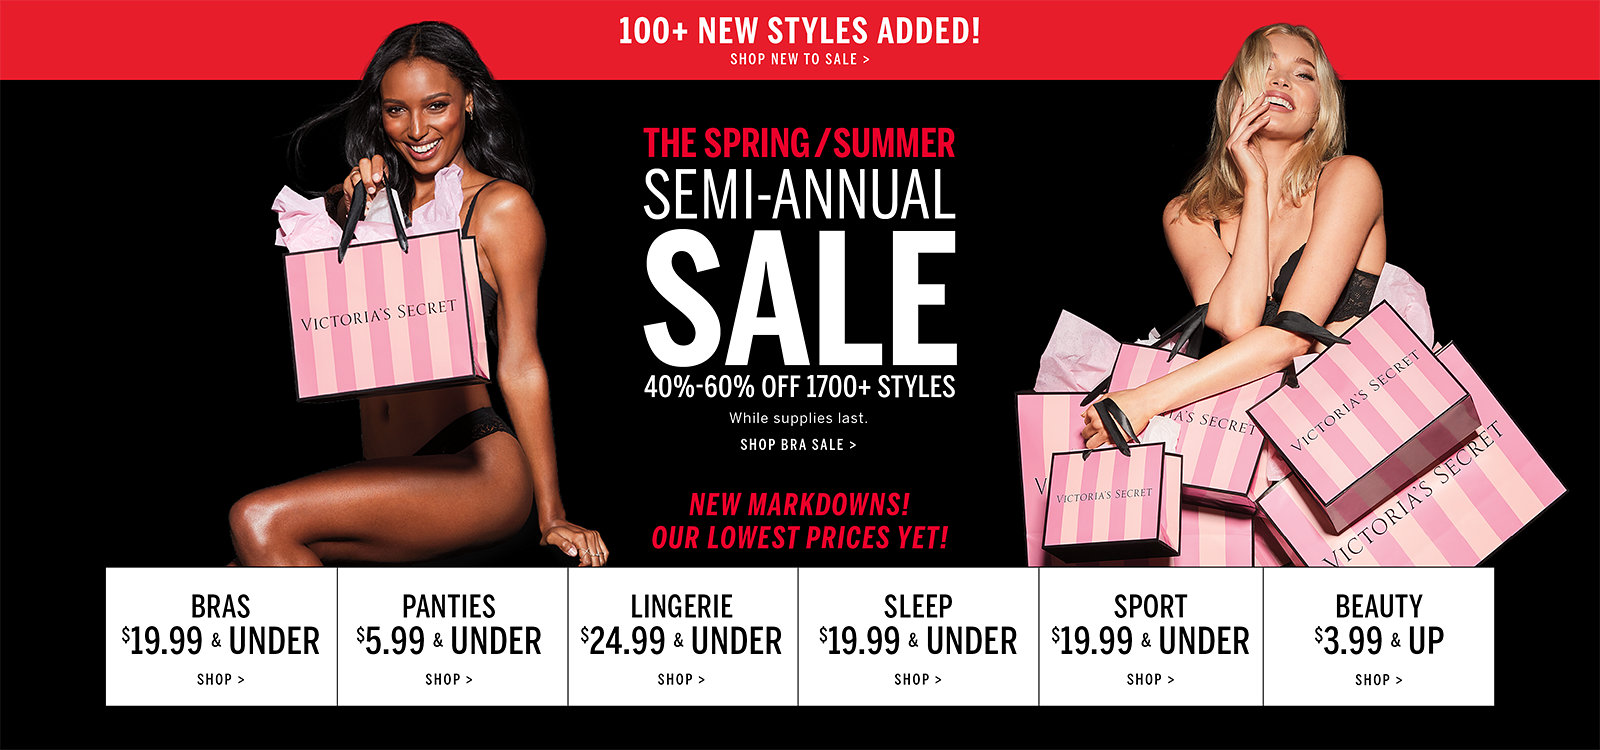 034afa13d8a0 Shop New To SaleThe Spring/Summer Semi-Annual Sale. 40%-60% off 1700+  styles. While supplies last. New markdowns! Our lowest prices yet! Shop bras  sale.